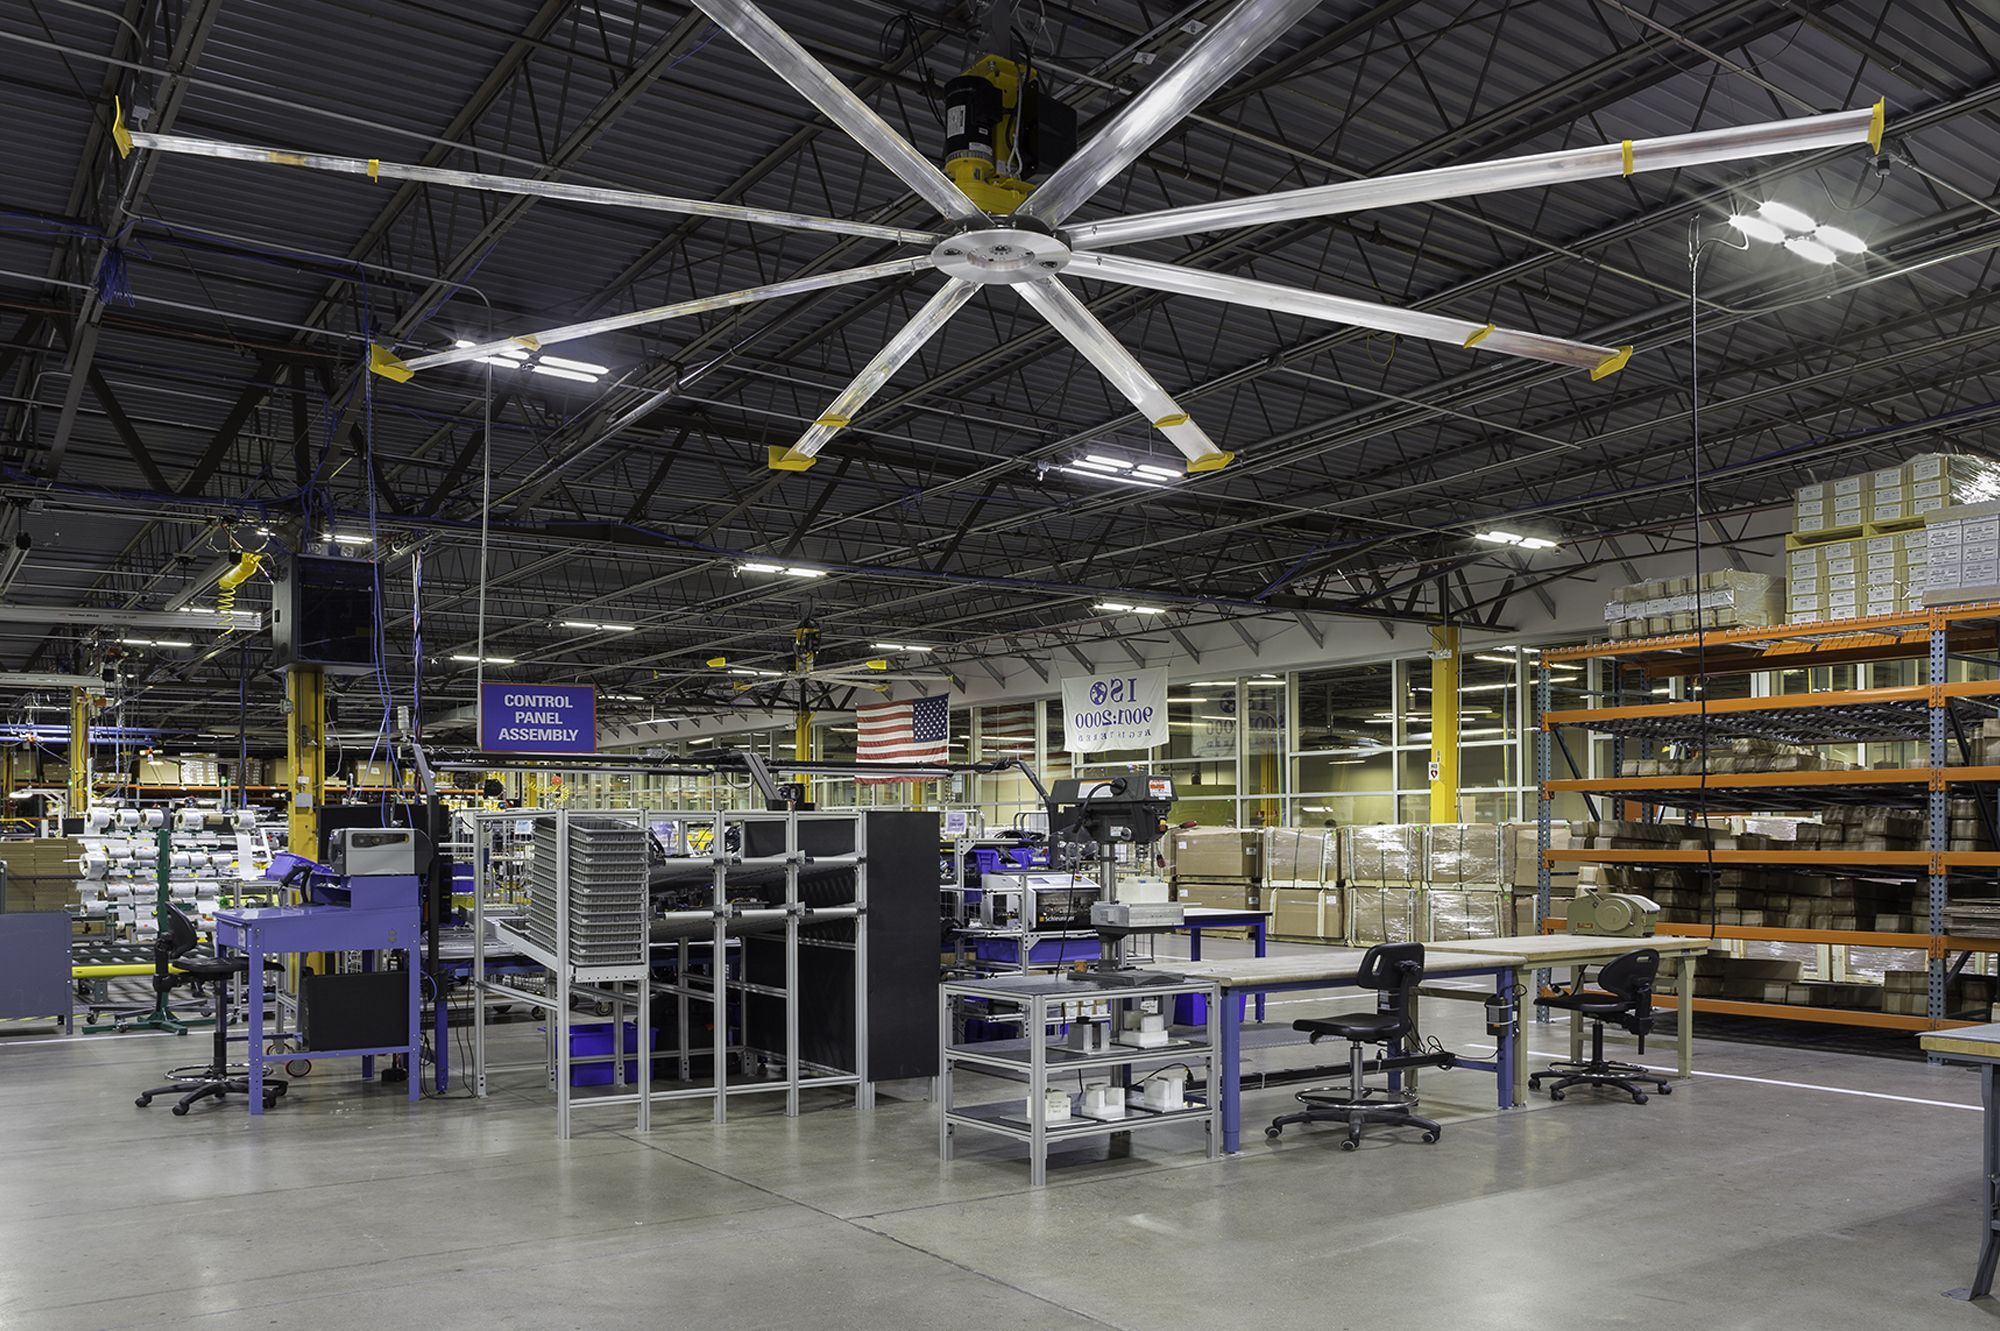 Powerfoil® X3.0 HVLS Commercial Ceiling Fans with LED Lighting | Big Ass Fans & Powerfoil® X3.0 HVLS Commercial Ceiling Fans with LED Lighting ... azcodes.com